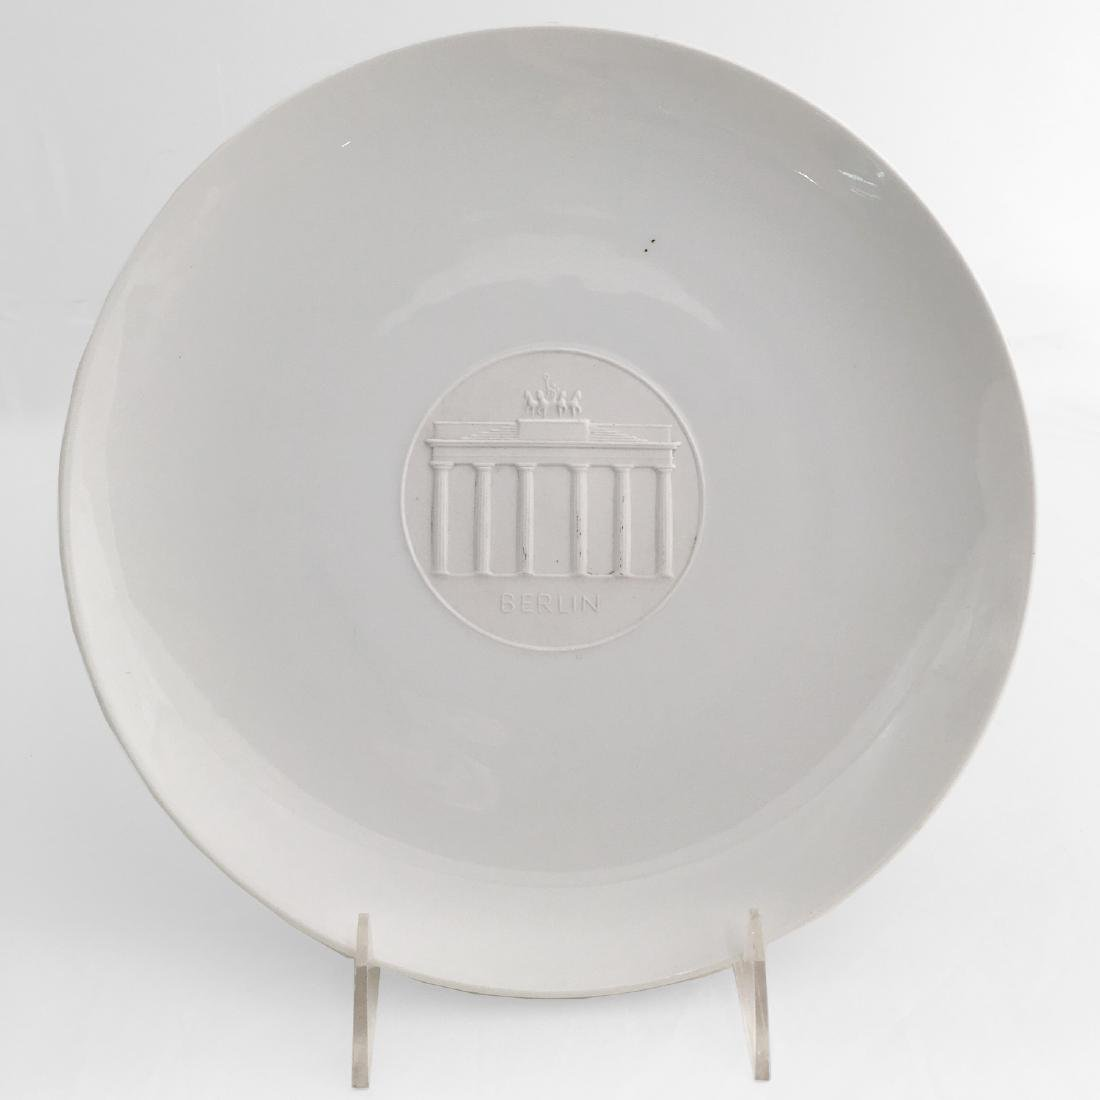 KPM Porcelain Plate Commemorating Berlin